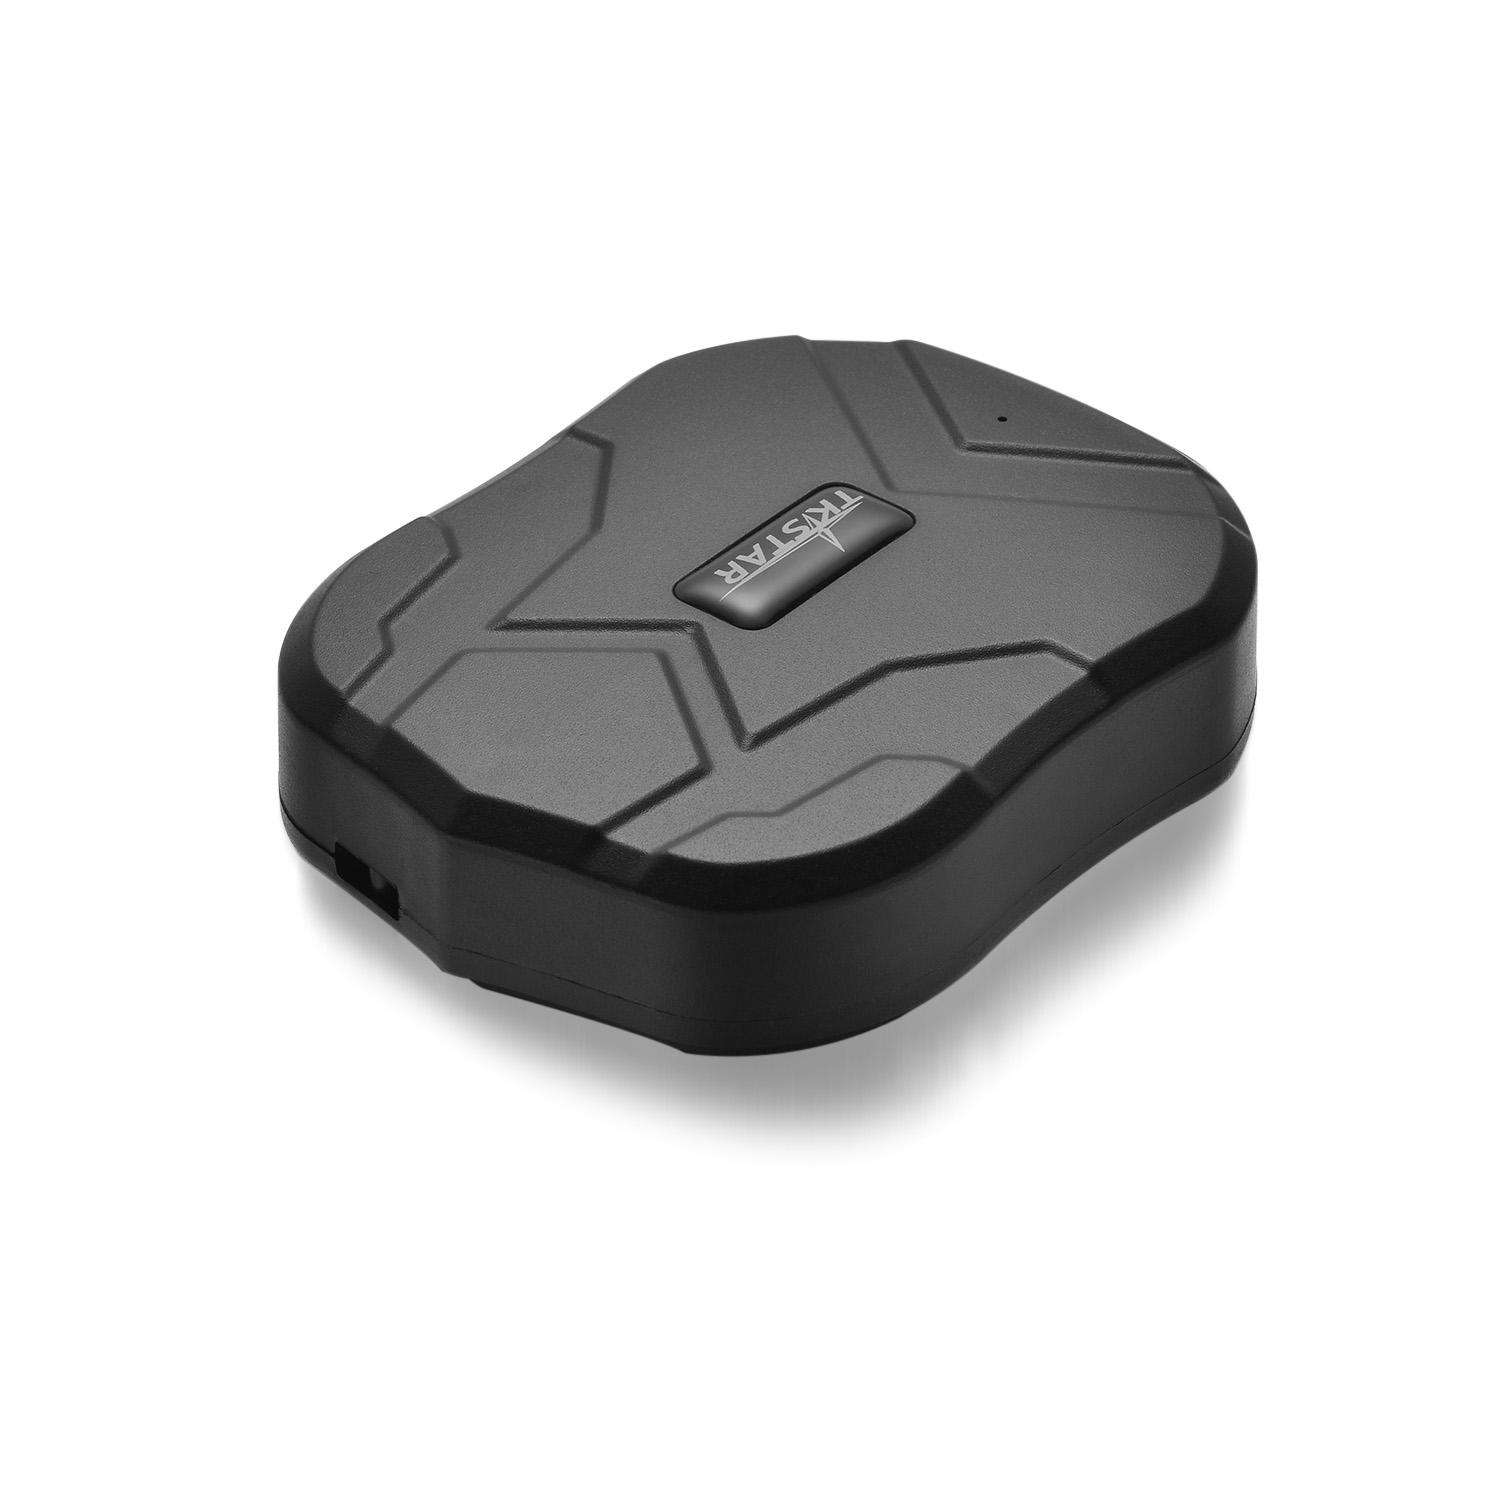 2020 5000MAH live tracking New Arrival Vehicle Car GPS Tracker TKSTAR TK905 Tracker mini gps fee lifetime app